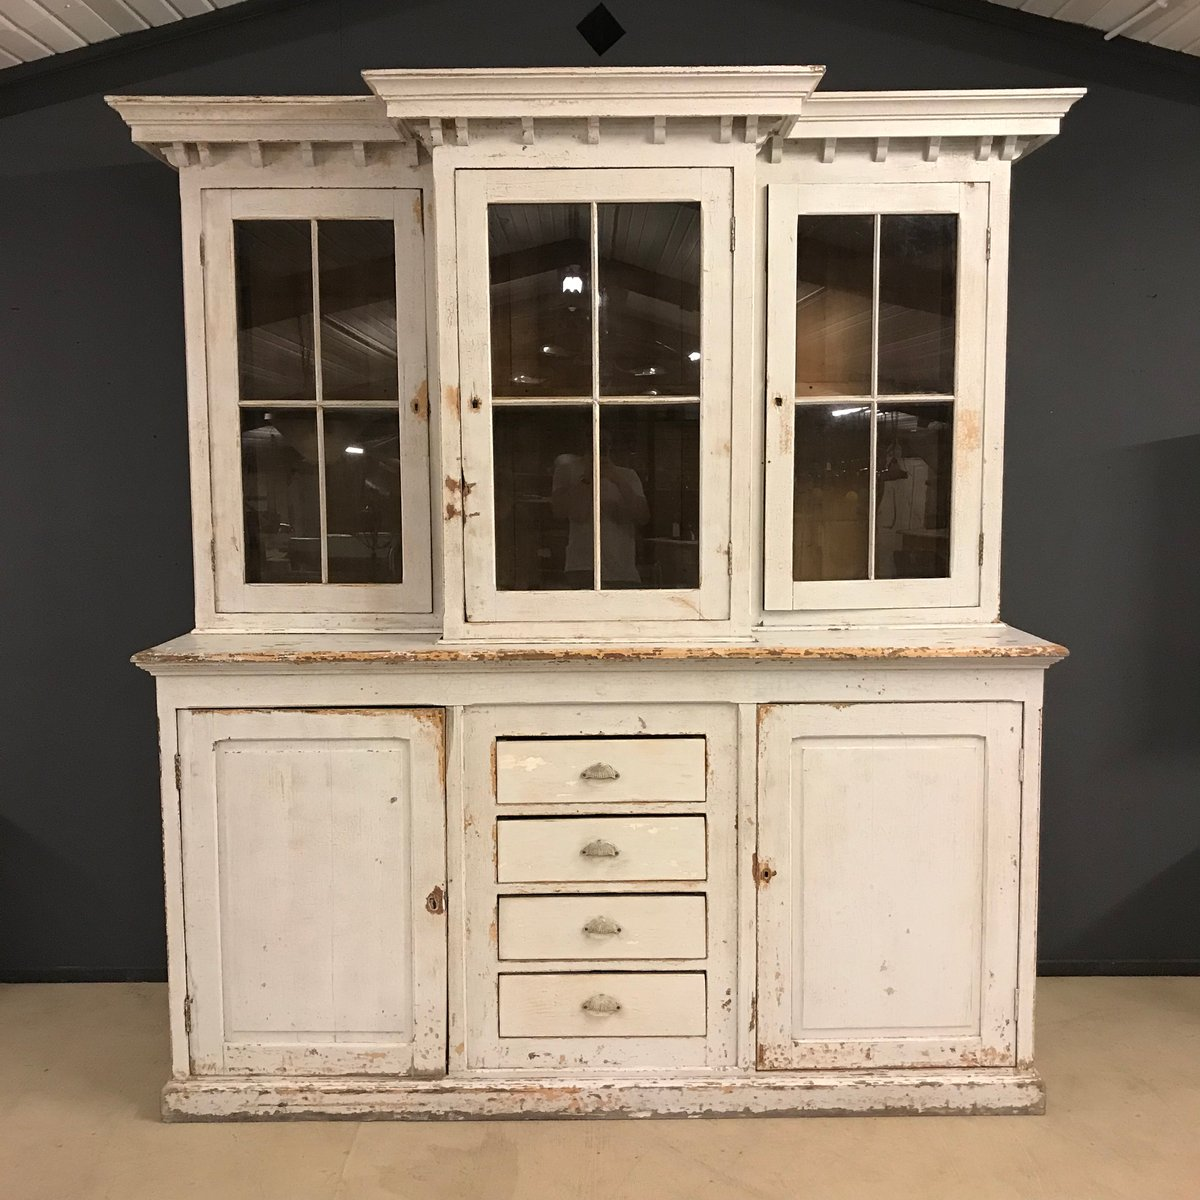 Superb Large French Antique Buffet Cabinet, 19th Century For Sale At Pamono